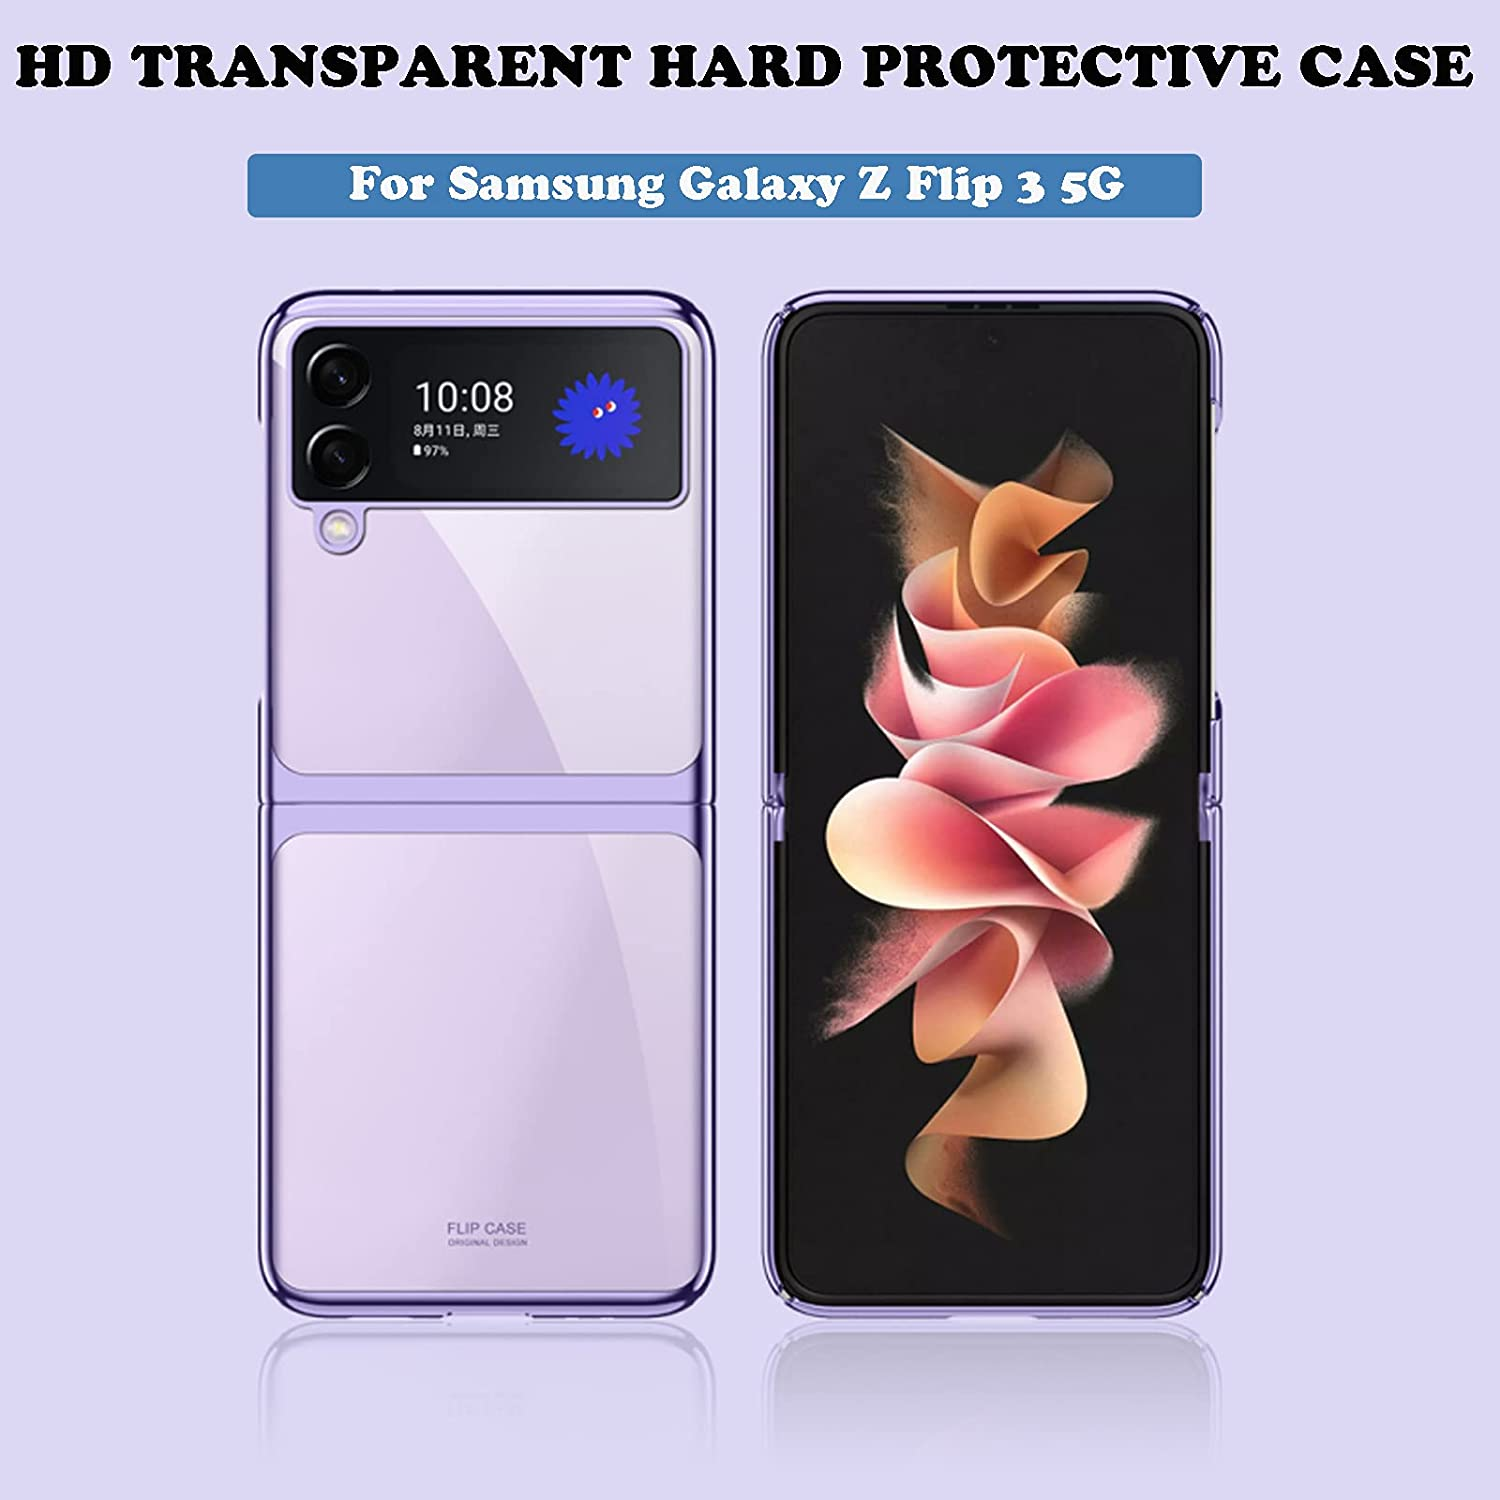 Phone Case Compatible with Samsung Galaxy Z Flip 3 5G Case Cover 2021, for Galaxy Z Flip3 Protective Cover Shell Slim Durable, Zflip3 Case Crystal PC Hard Shockproof for Samsung Z Flip 3 Clear Case